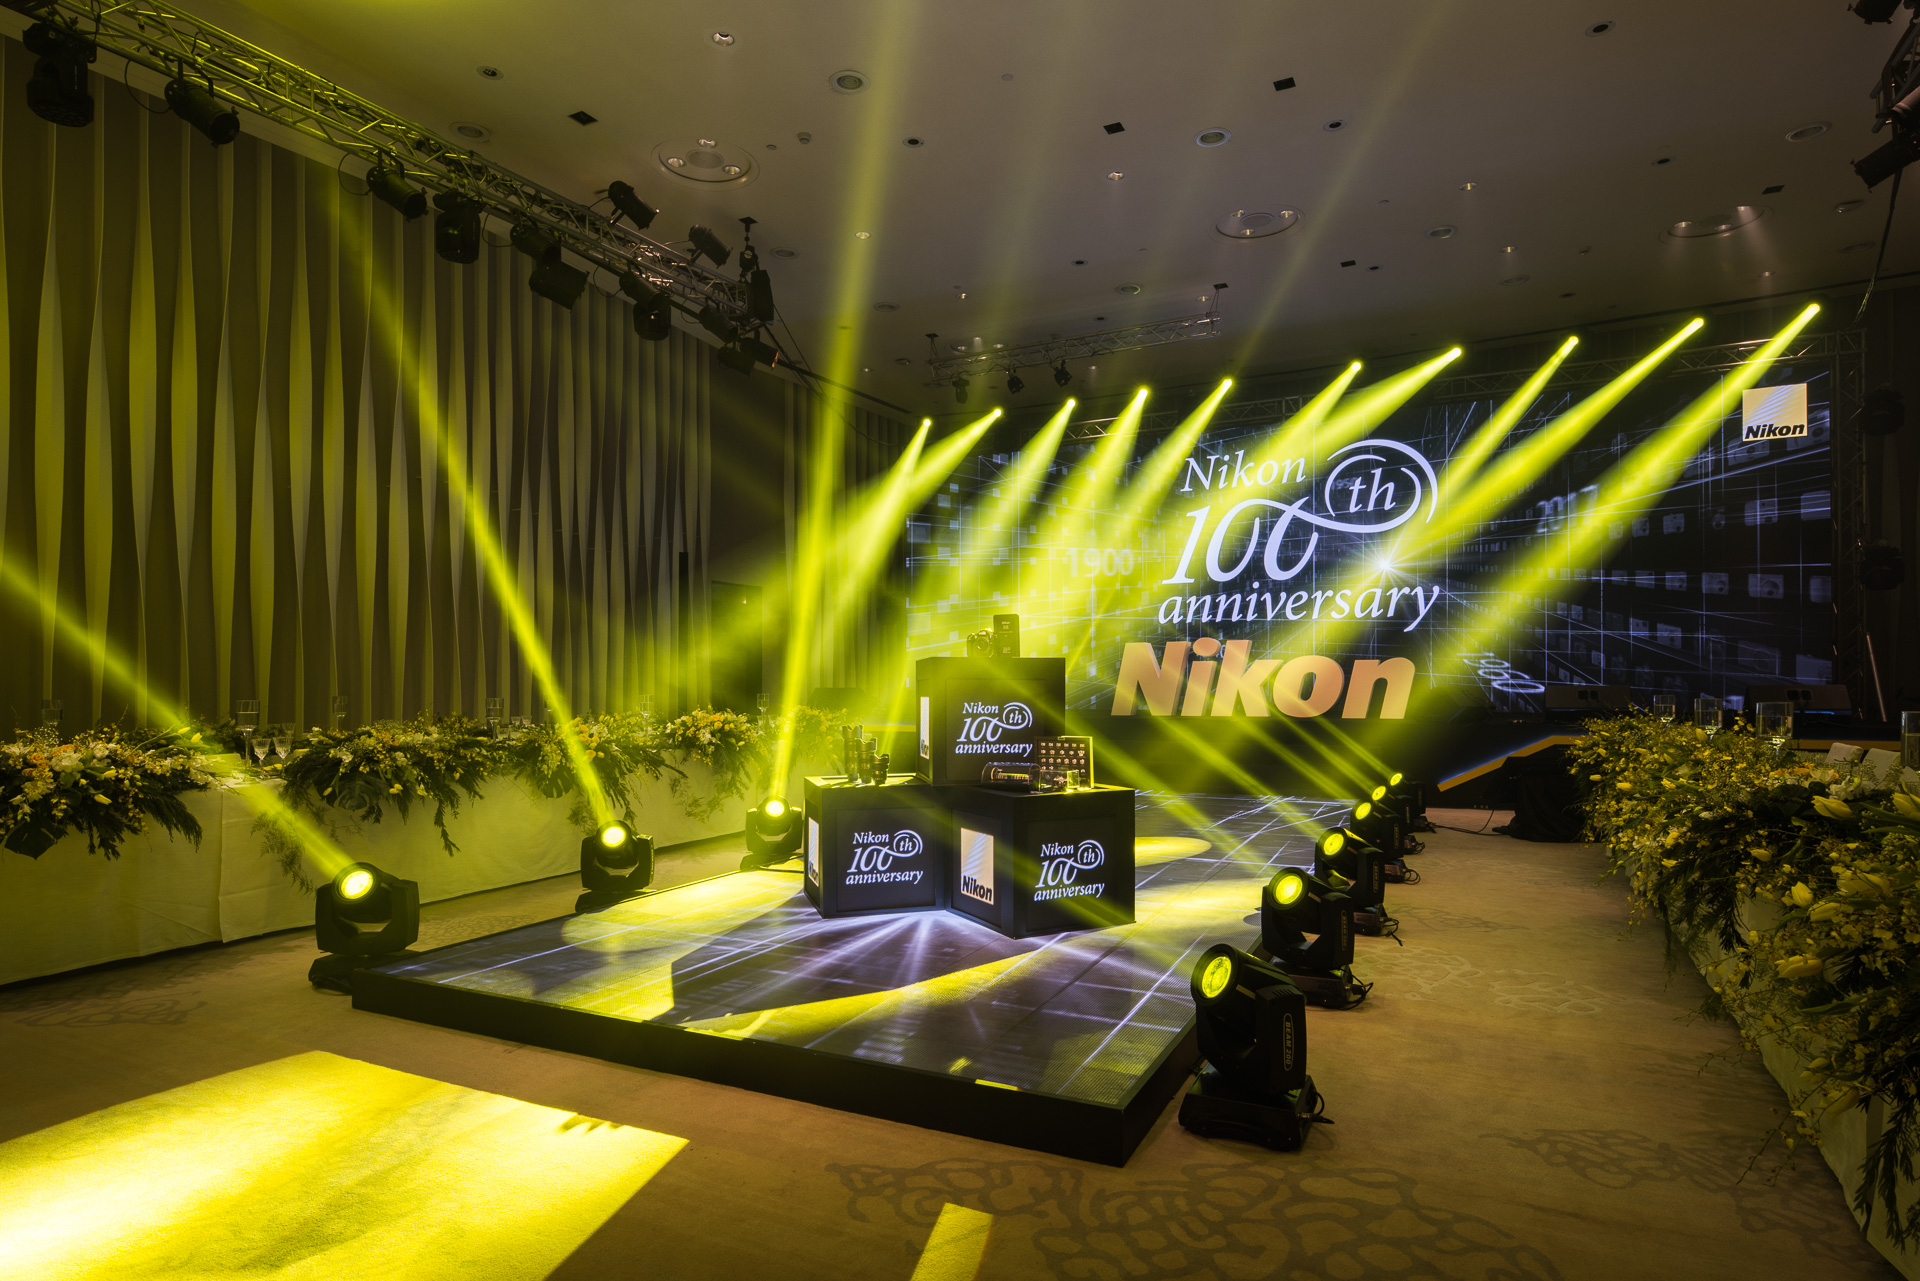 Nikon 100th Anniversary Cerebration